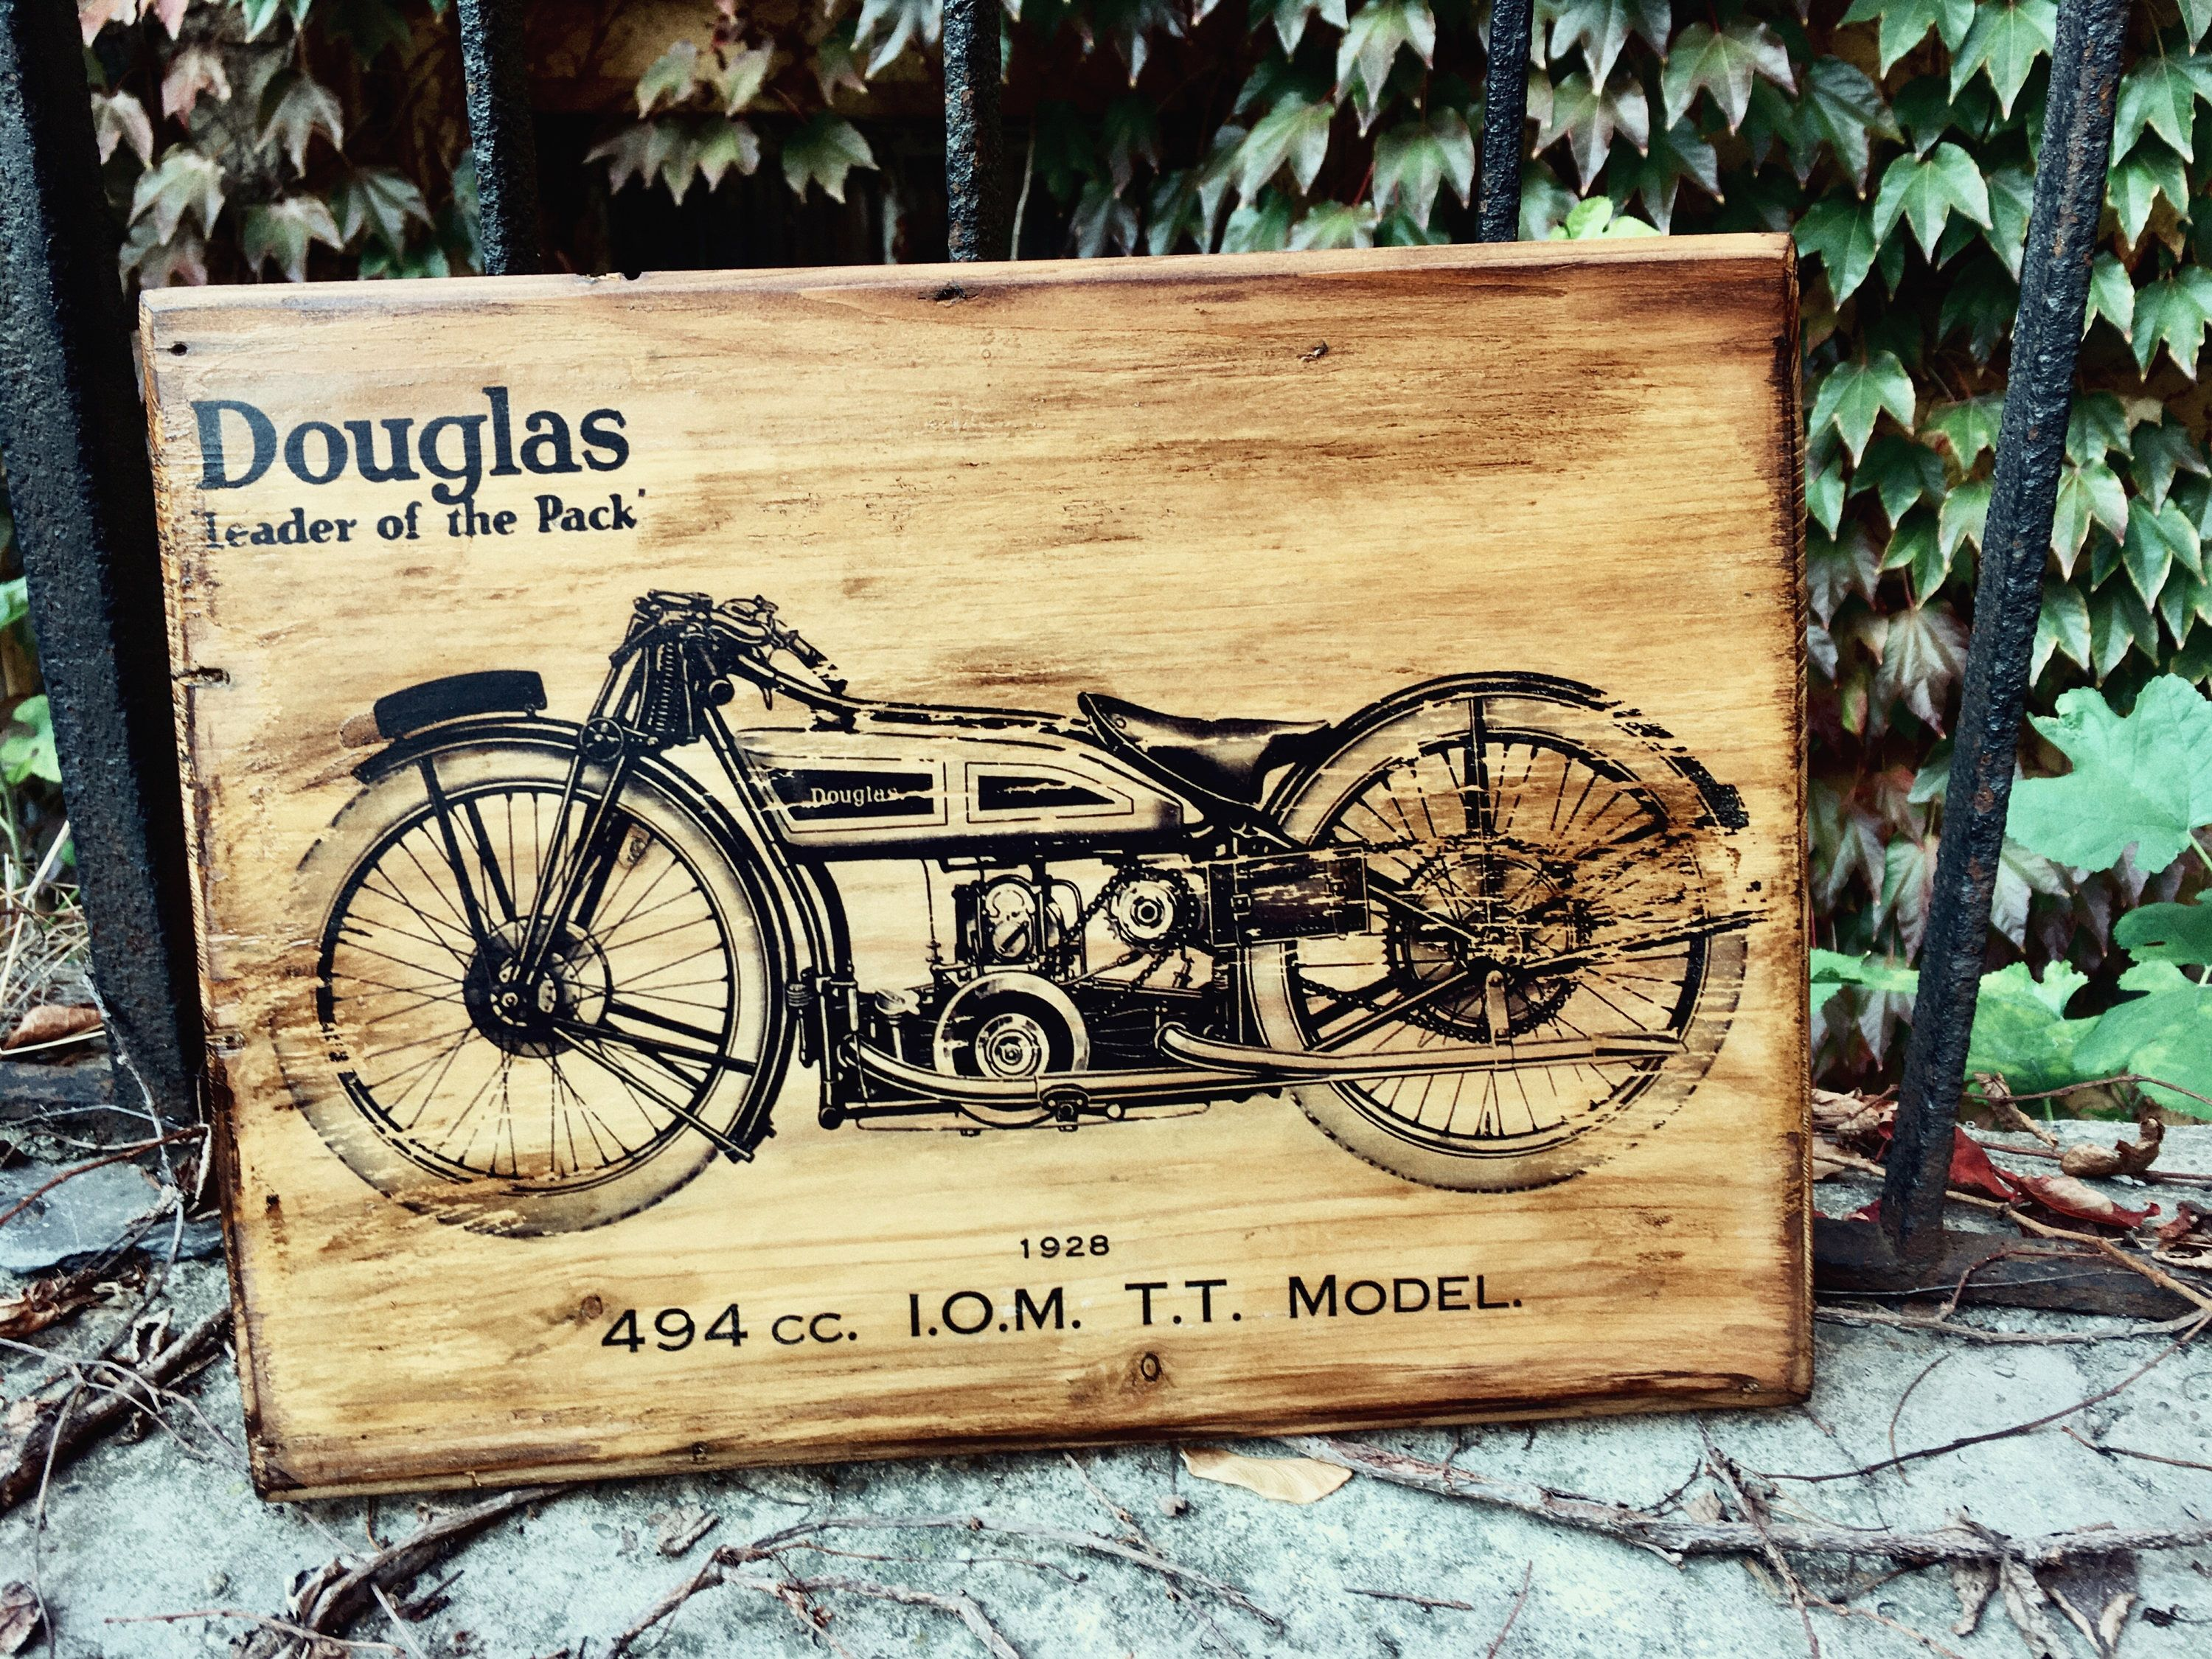 Vintage Douglas Motorcycle with flat tank from 1928 Wooden Picture ...